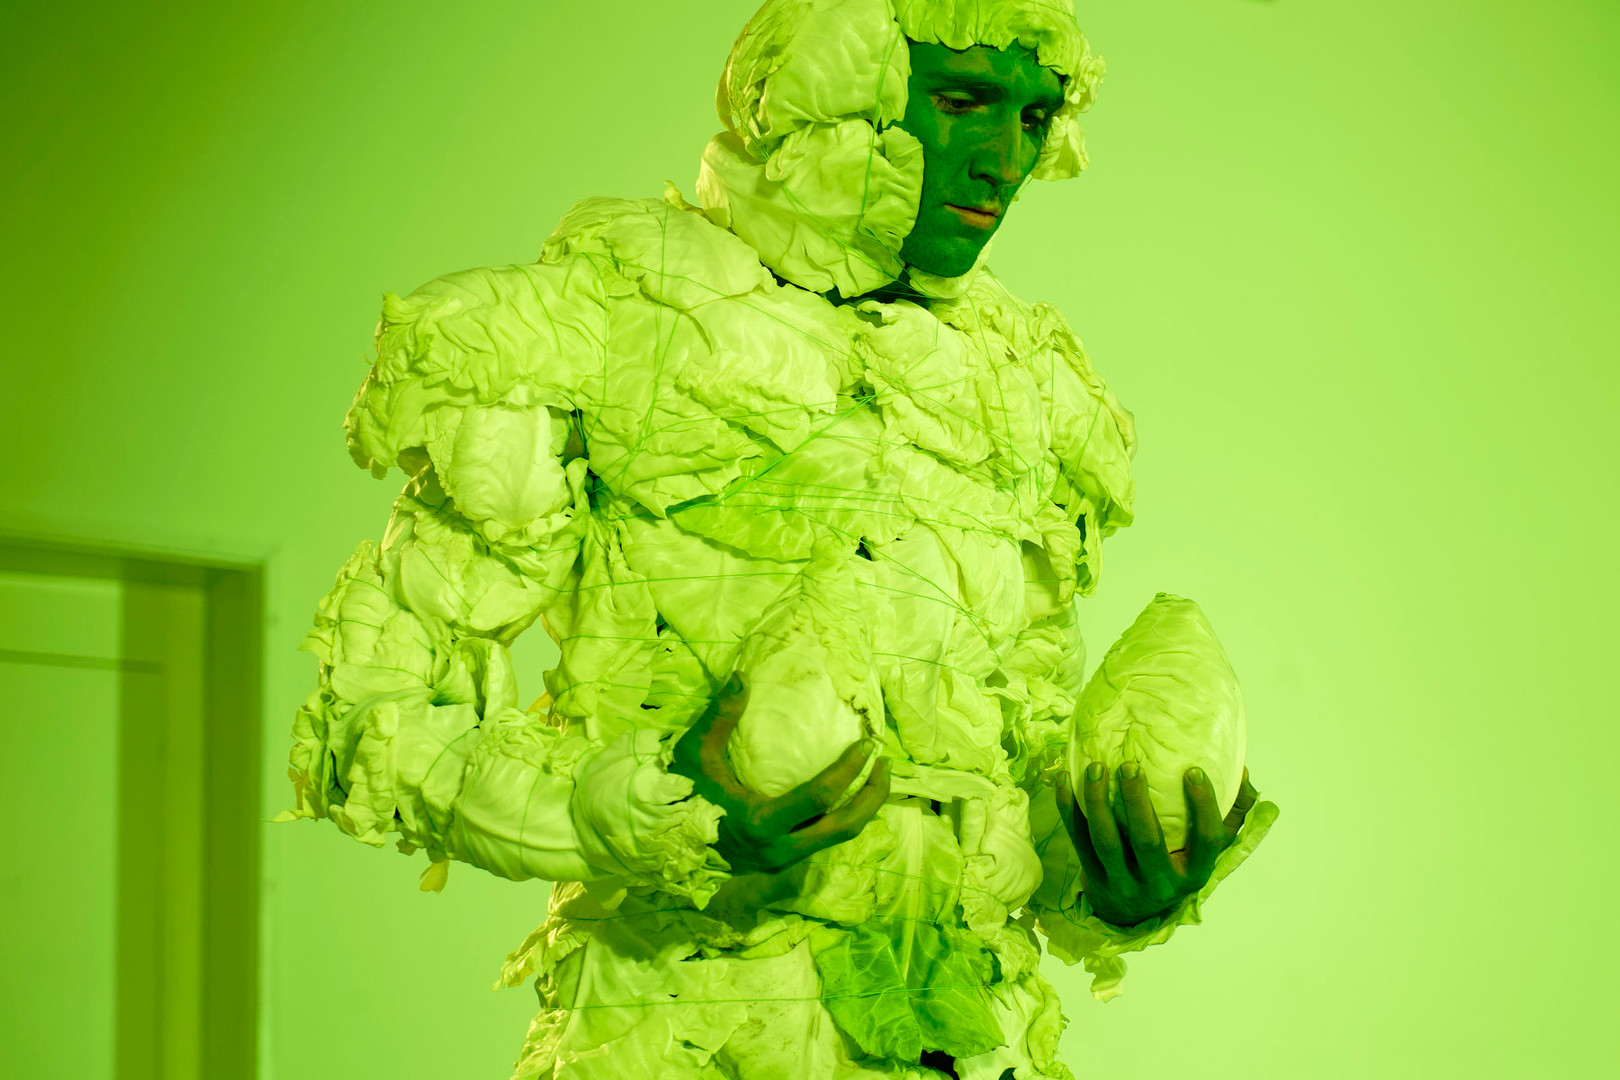 Cabbage, No Cabbage, Tomislav Feller, photo by Thomas Lenden